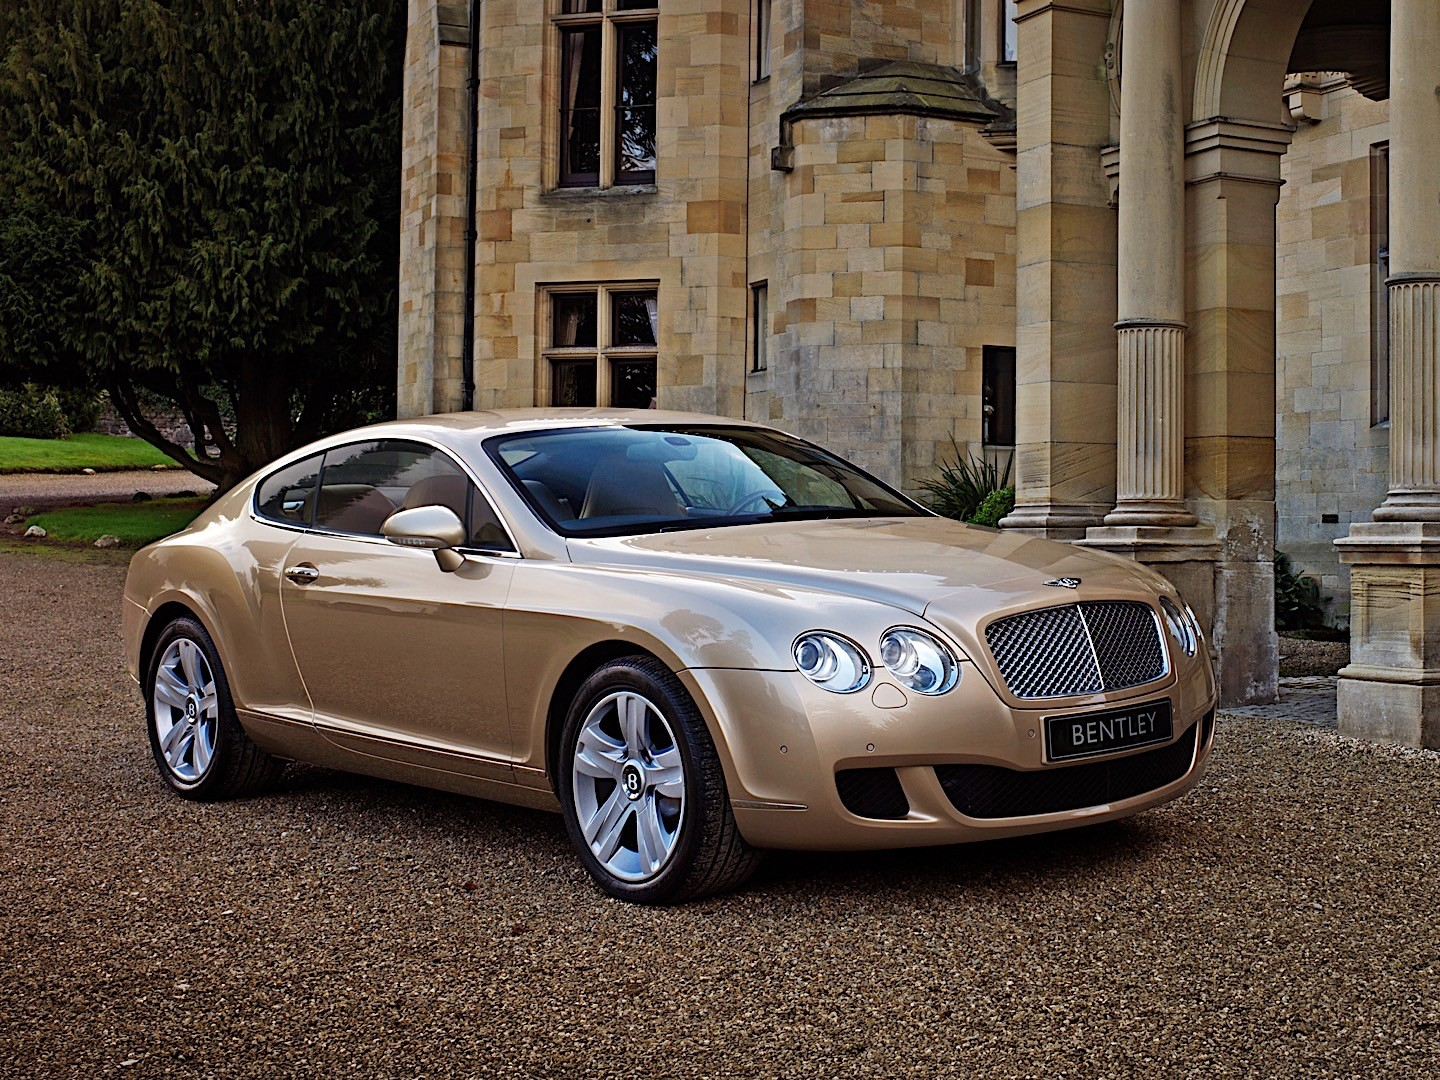 Bentley Continental Gt Specs 2003 2004 2005 2006